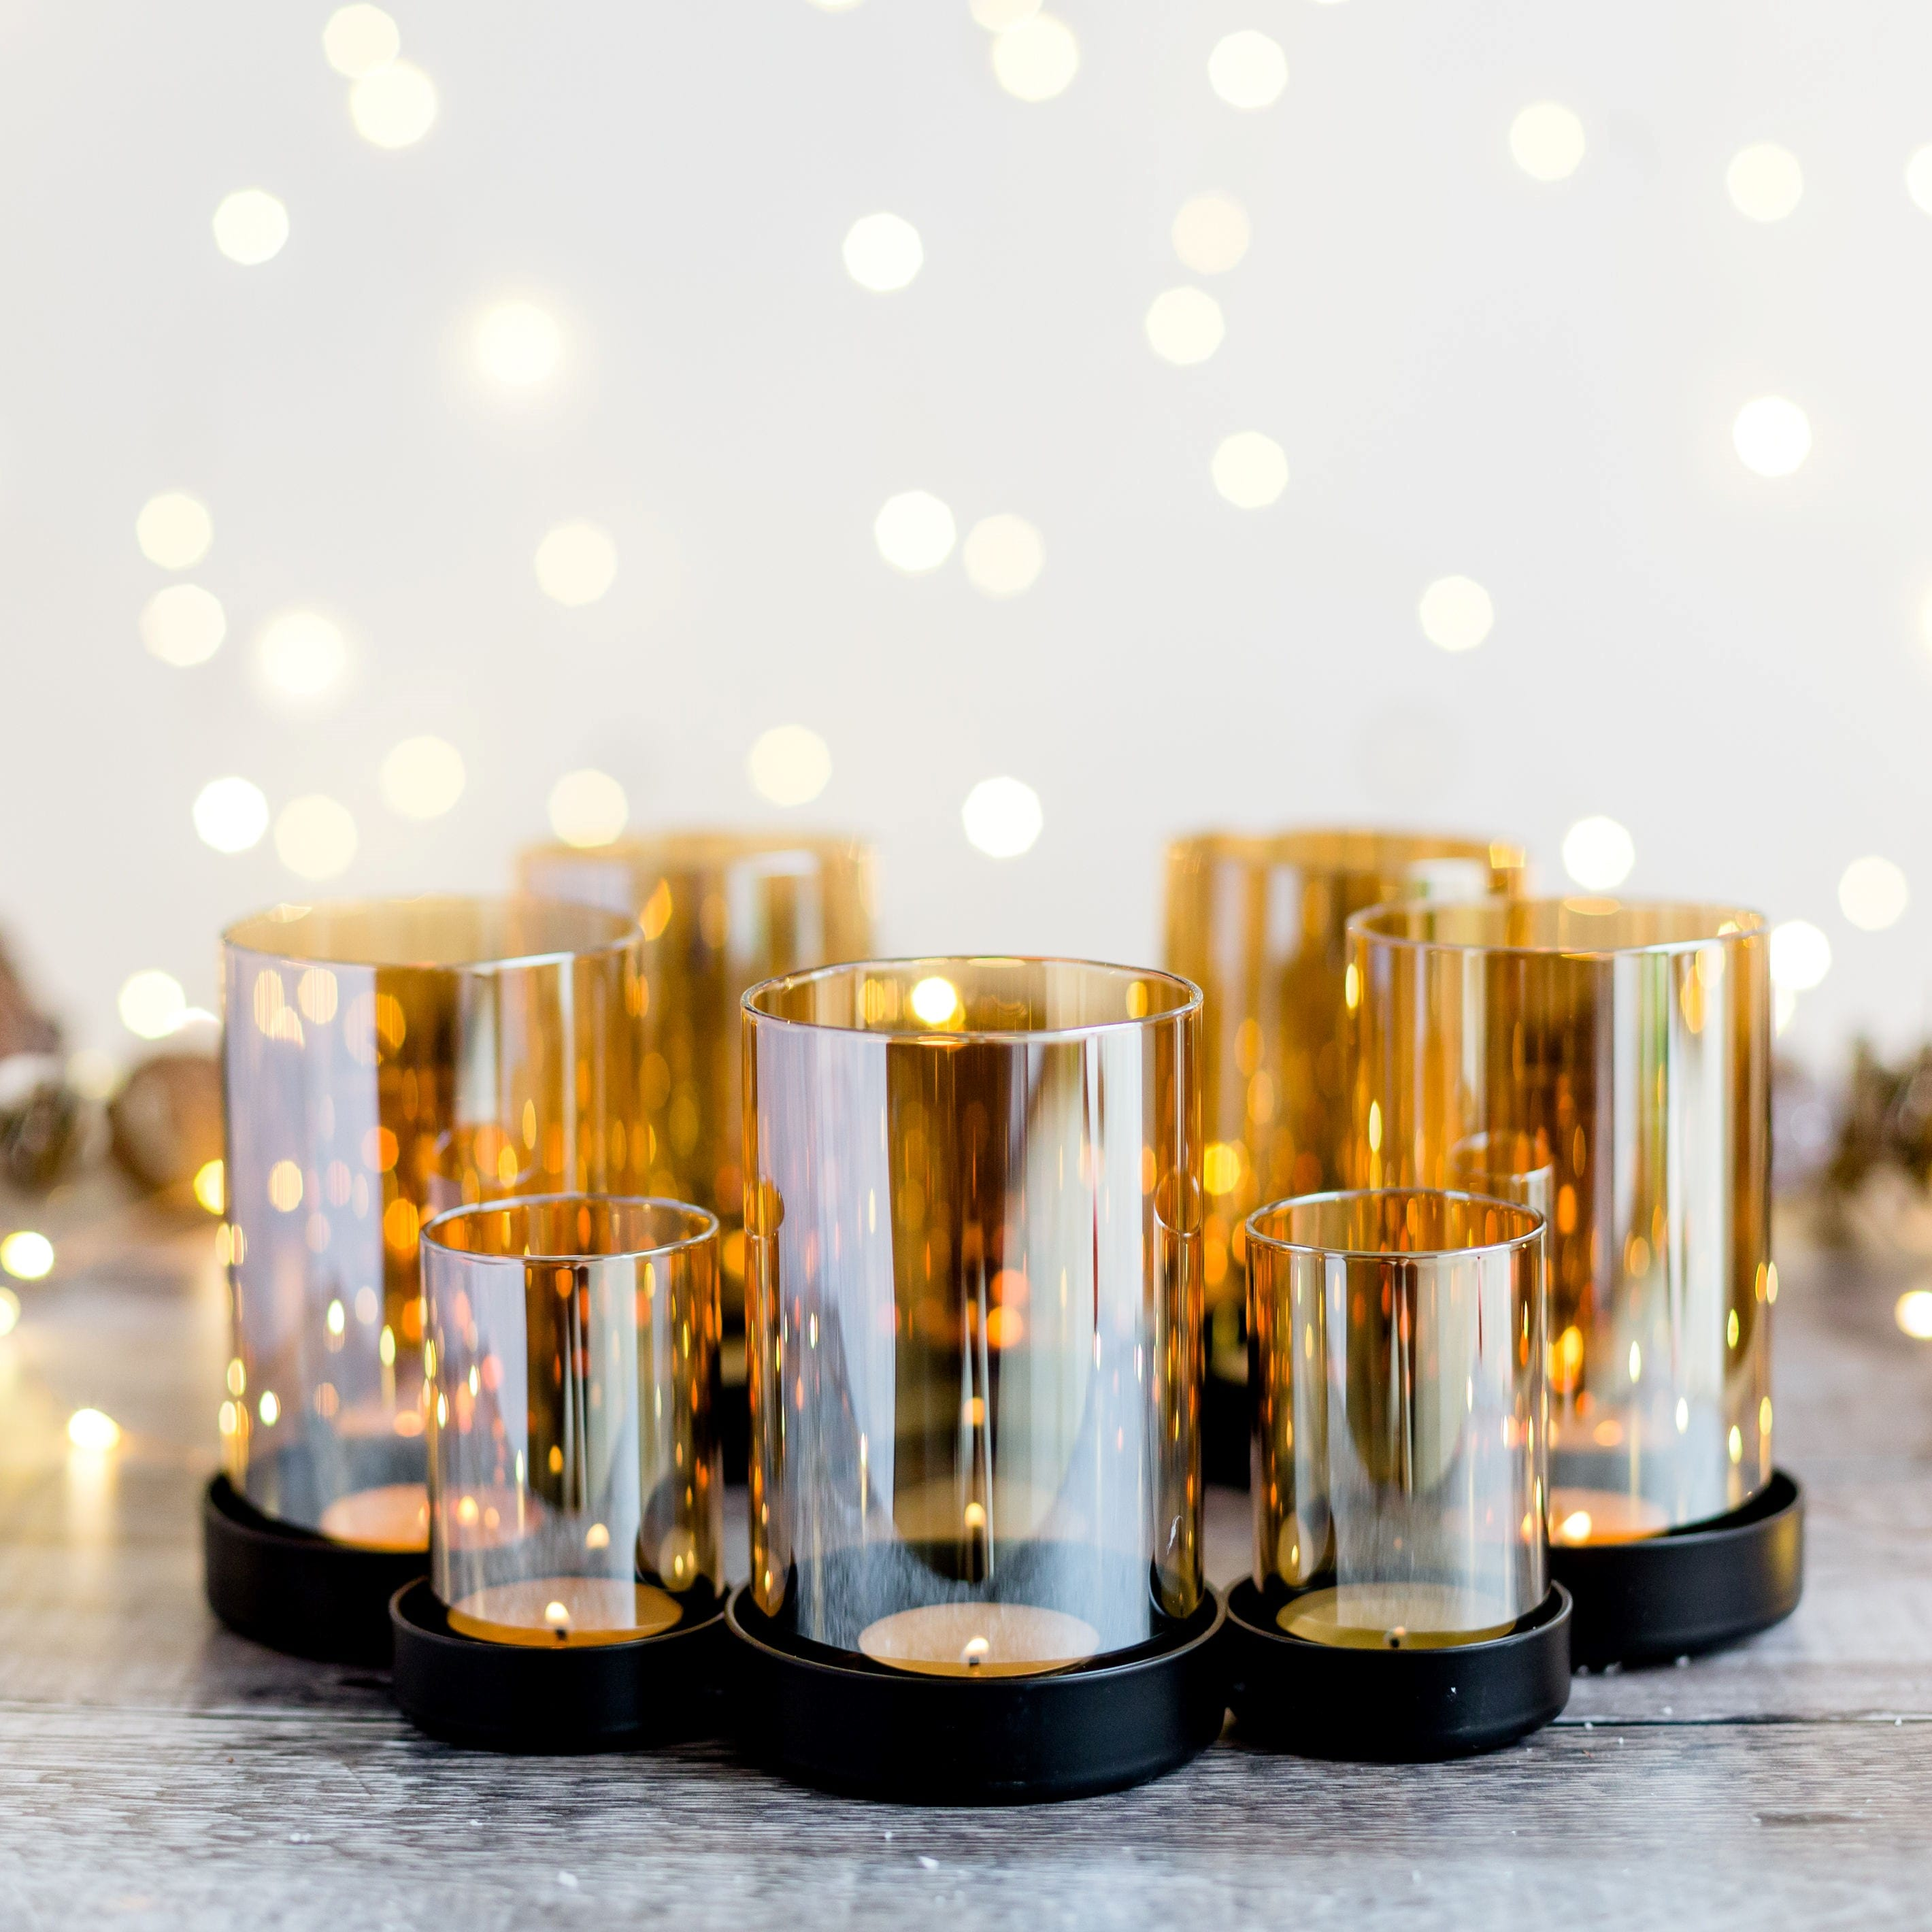 Lustre Tealight Holder Centerpiece